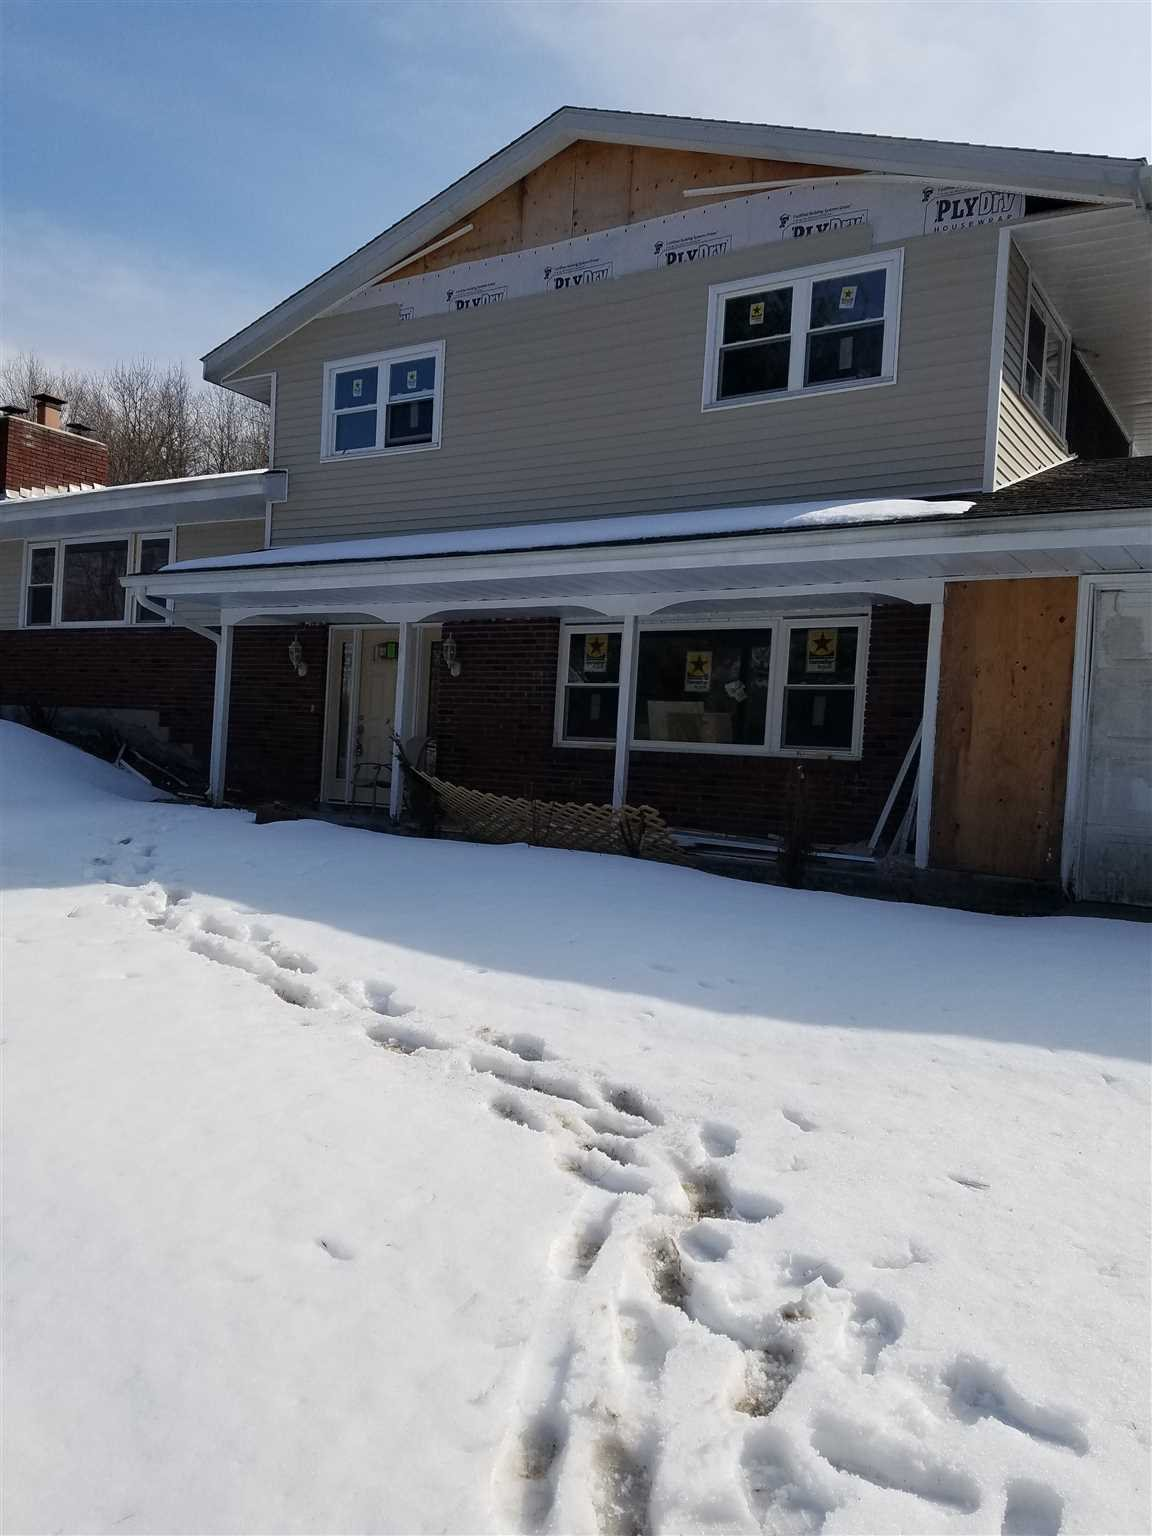 Single Family Home for Sale at 284 CRUM ELBOW 284 CRUM ELBOW Hyde Park, New York 12538 United States